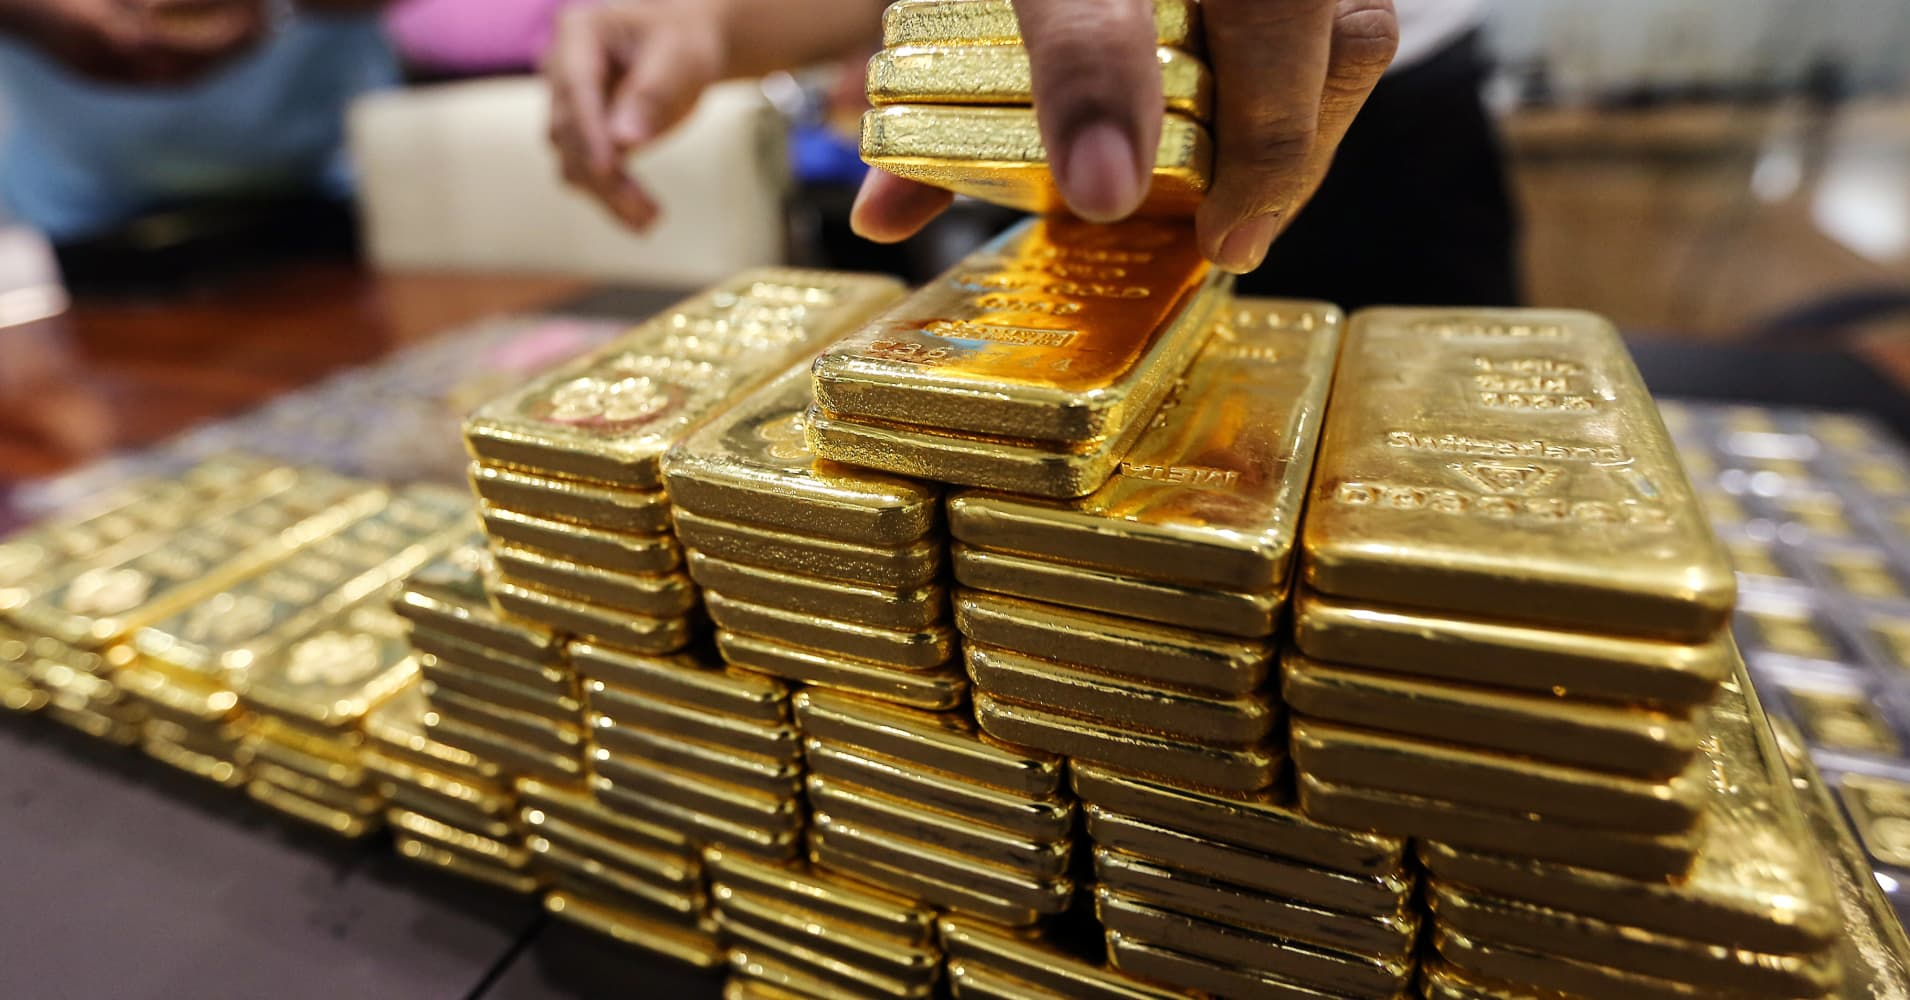 The Wealthy Are Hoarding Physical Gold – This according to data buried in a recent Goldman Sachs note to clients…